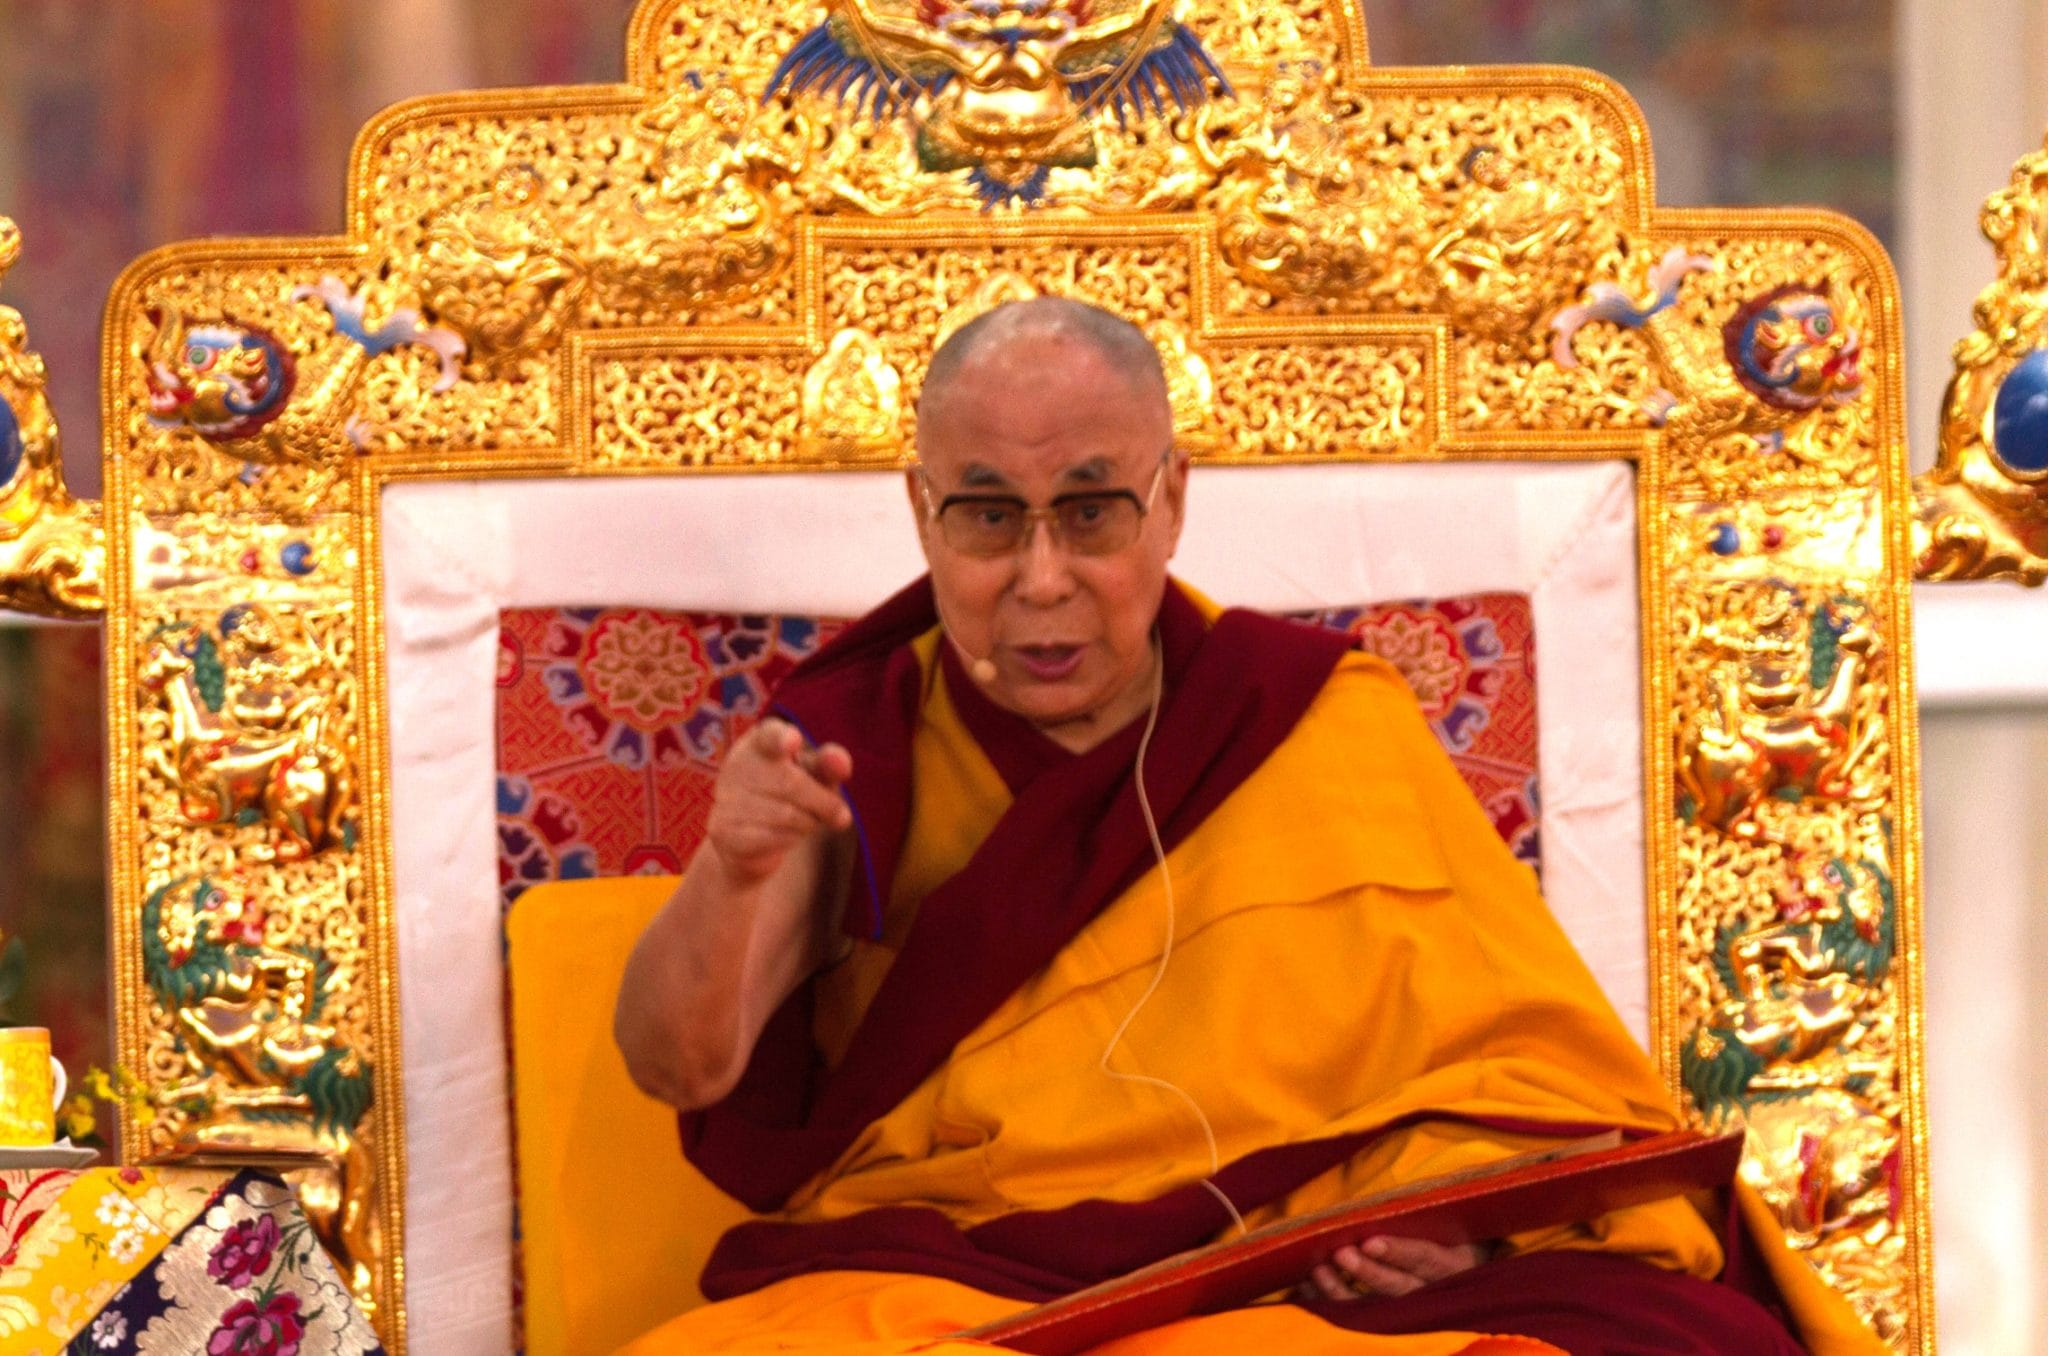 His Holiness the Dalai Lama at the Kalachakra Empowerment, Bodhgaya, India, 2017. Photo by Gordon Eaton.